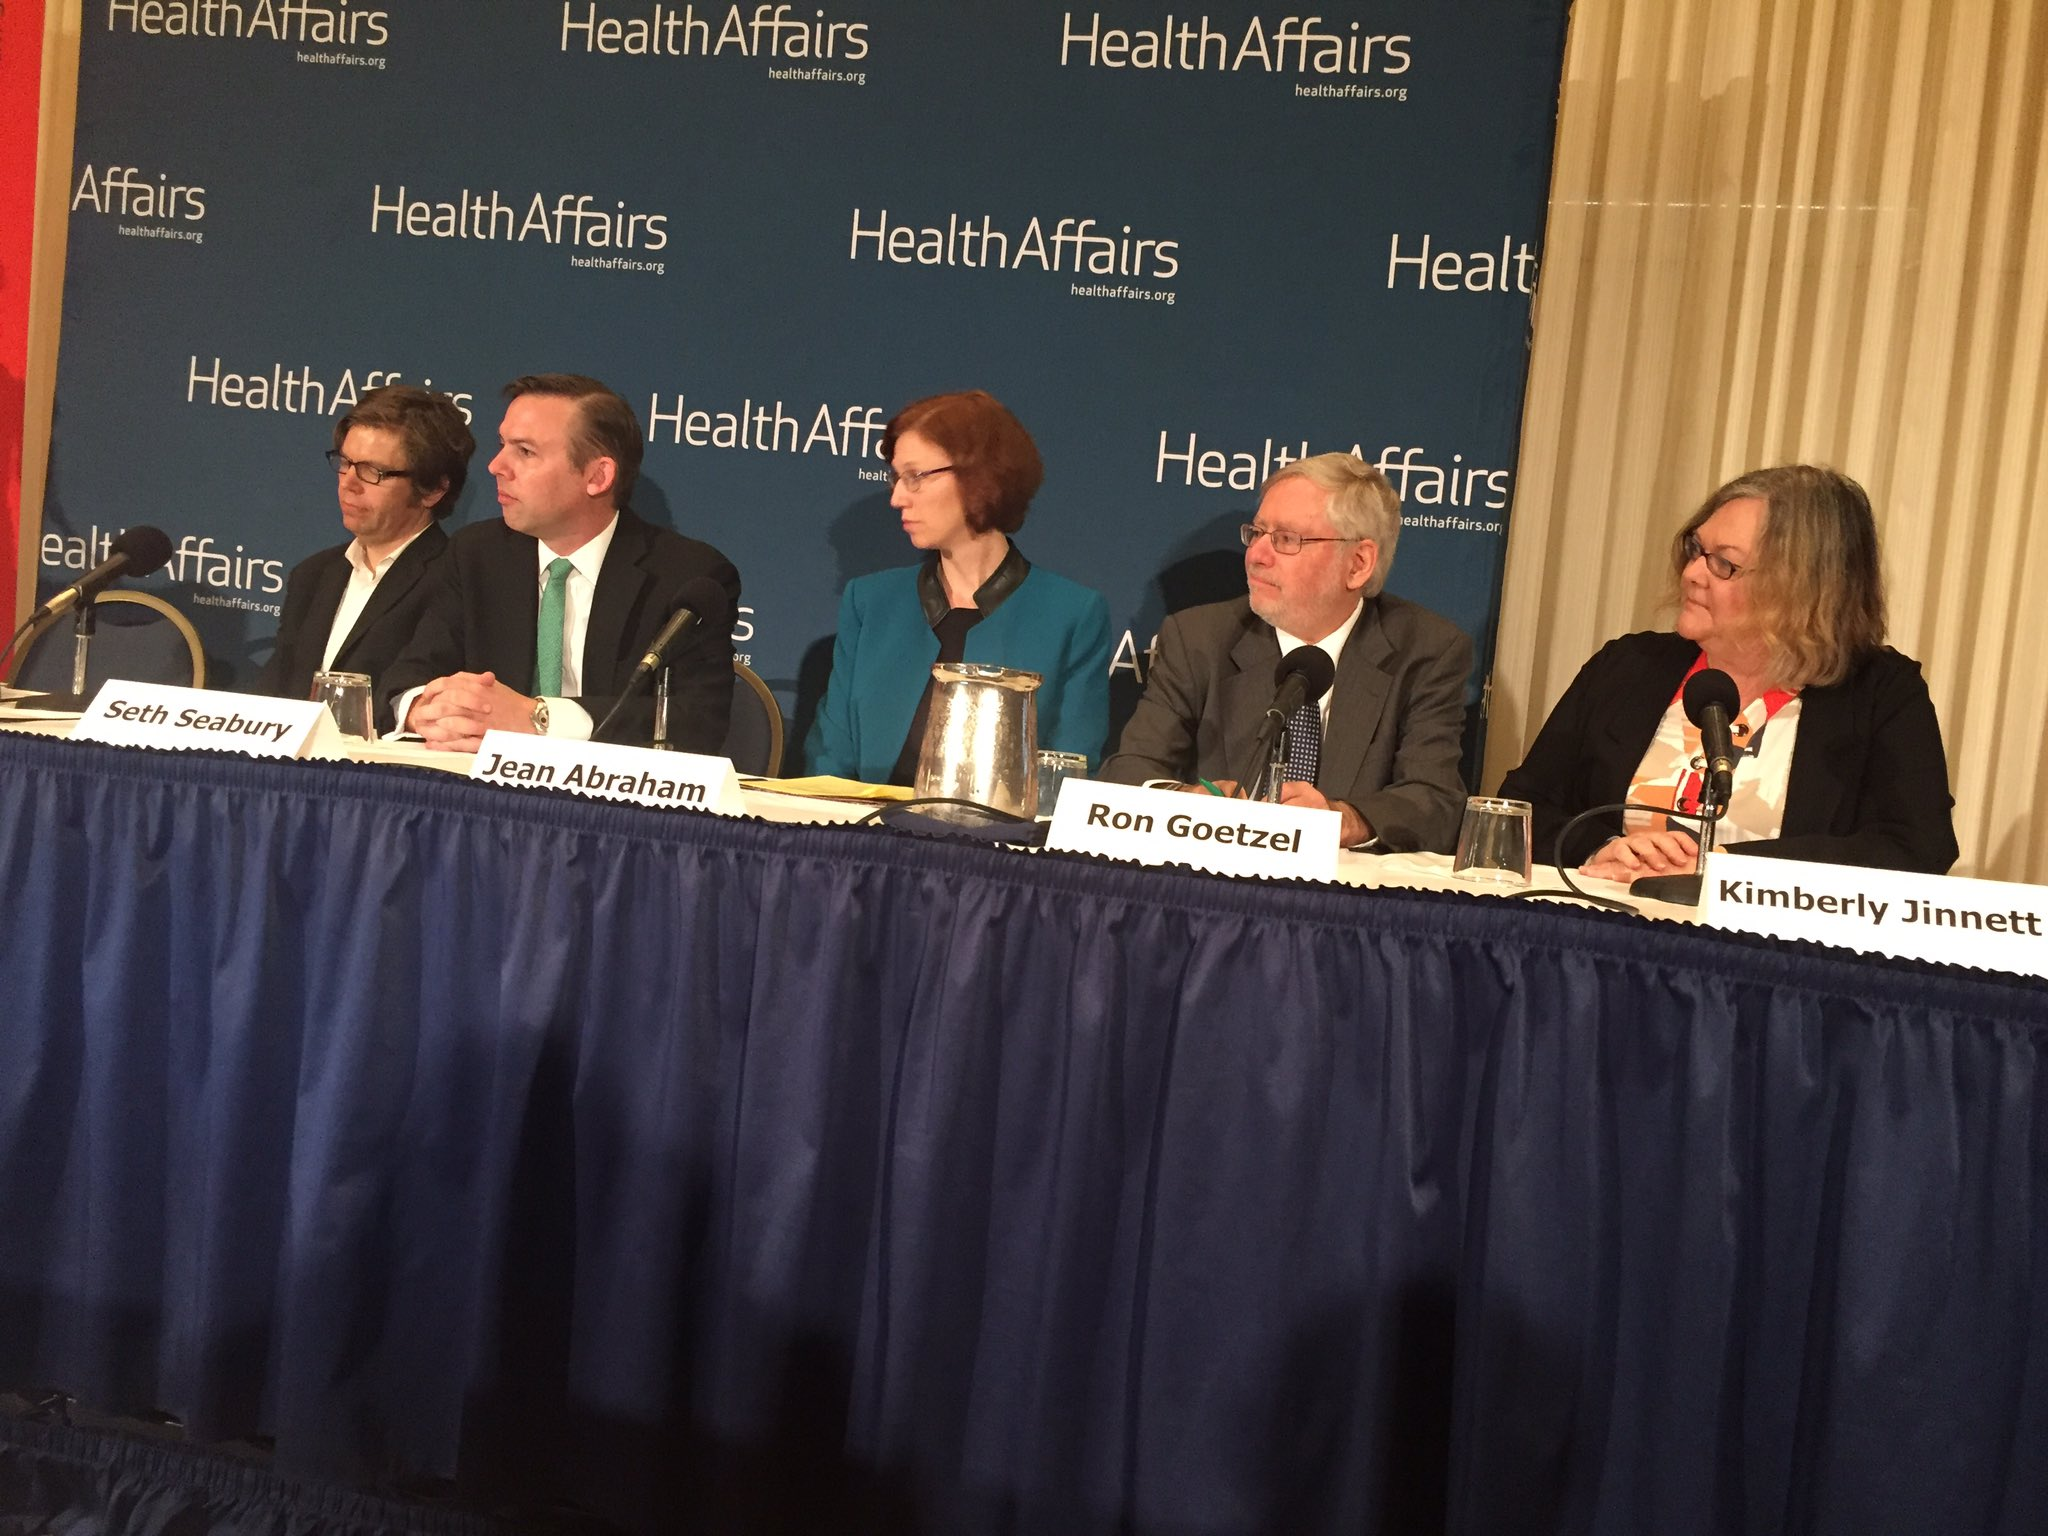 Full panel at @Health_Affairs briefing on Work, #Wellness, & #Health. @drehkopf @seth_seabury @abrah042 @Ron_Goetzel #WorkandHealth https://t.co/ok988voeN3